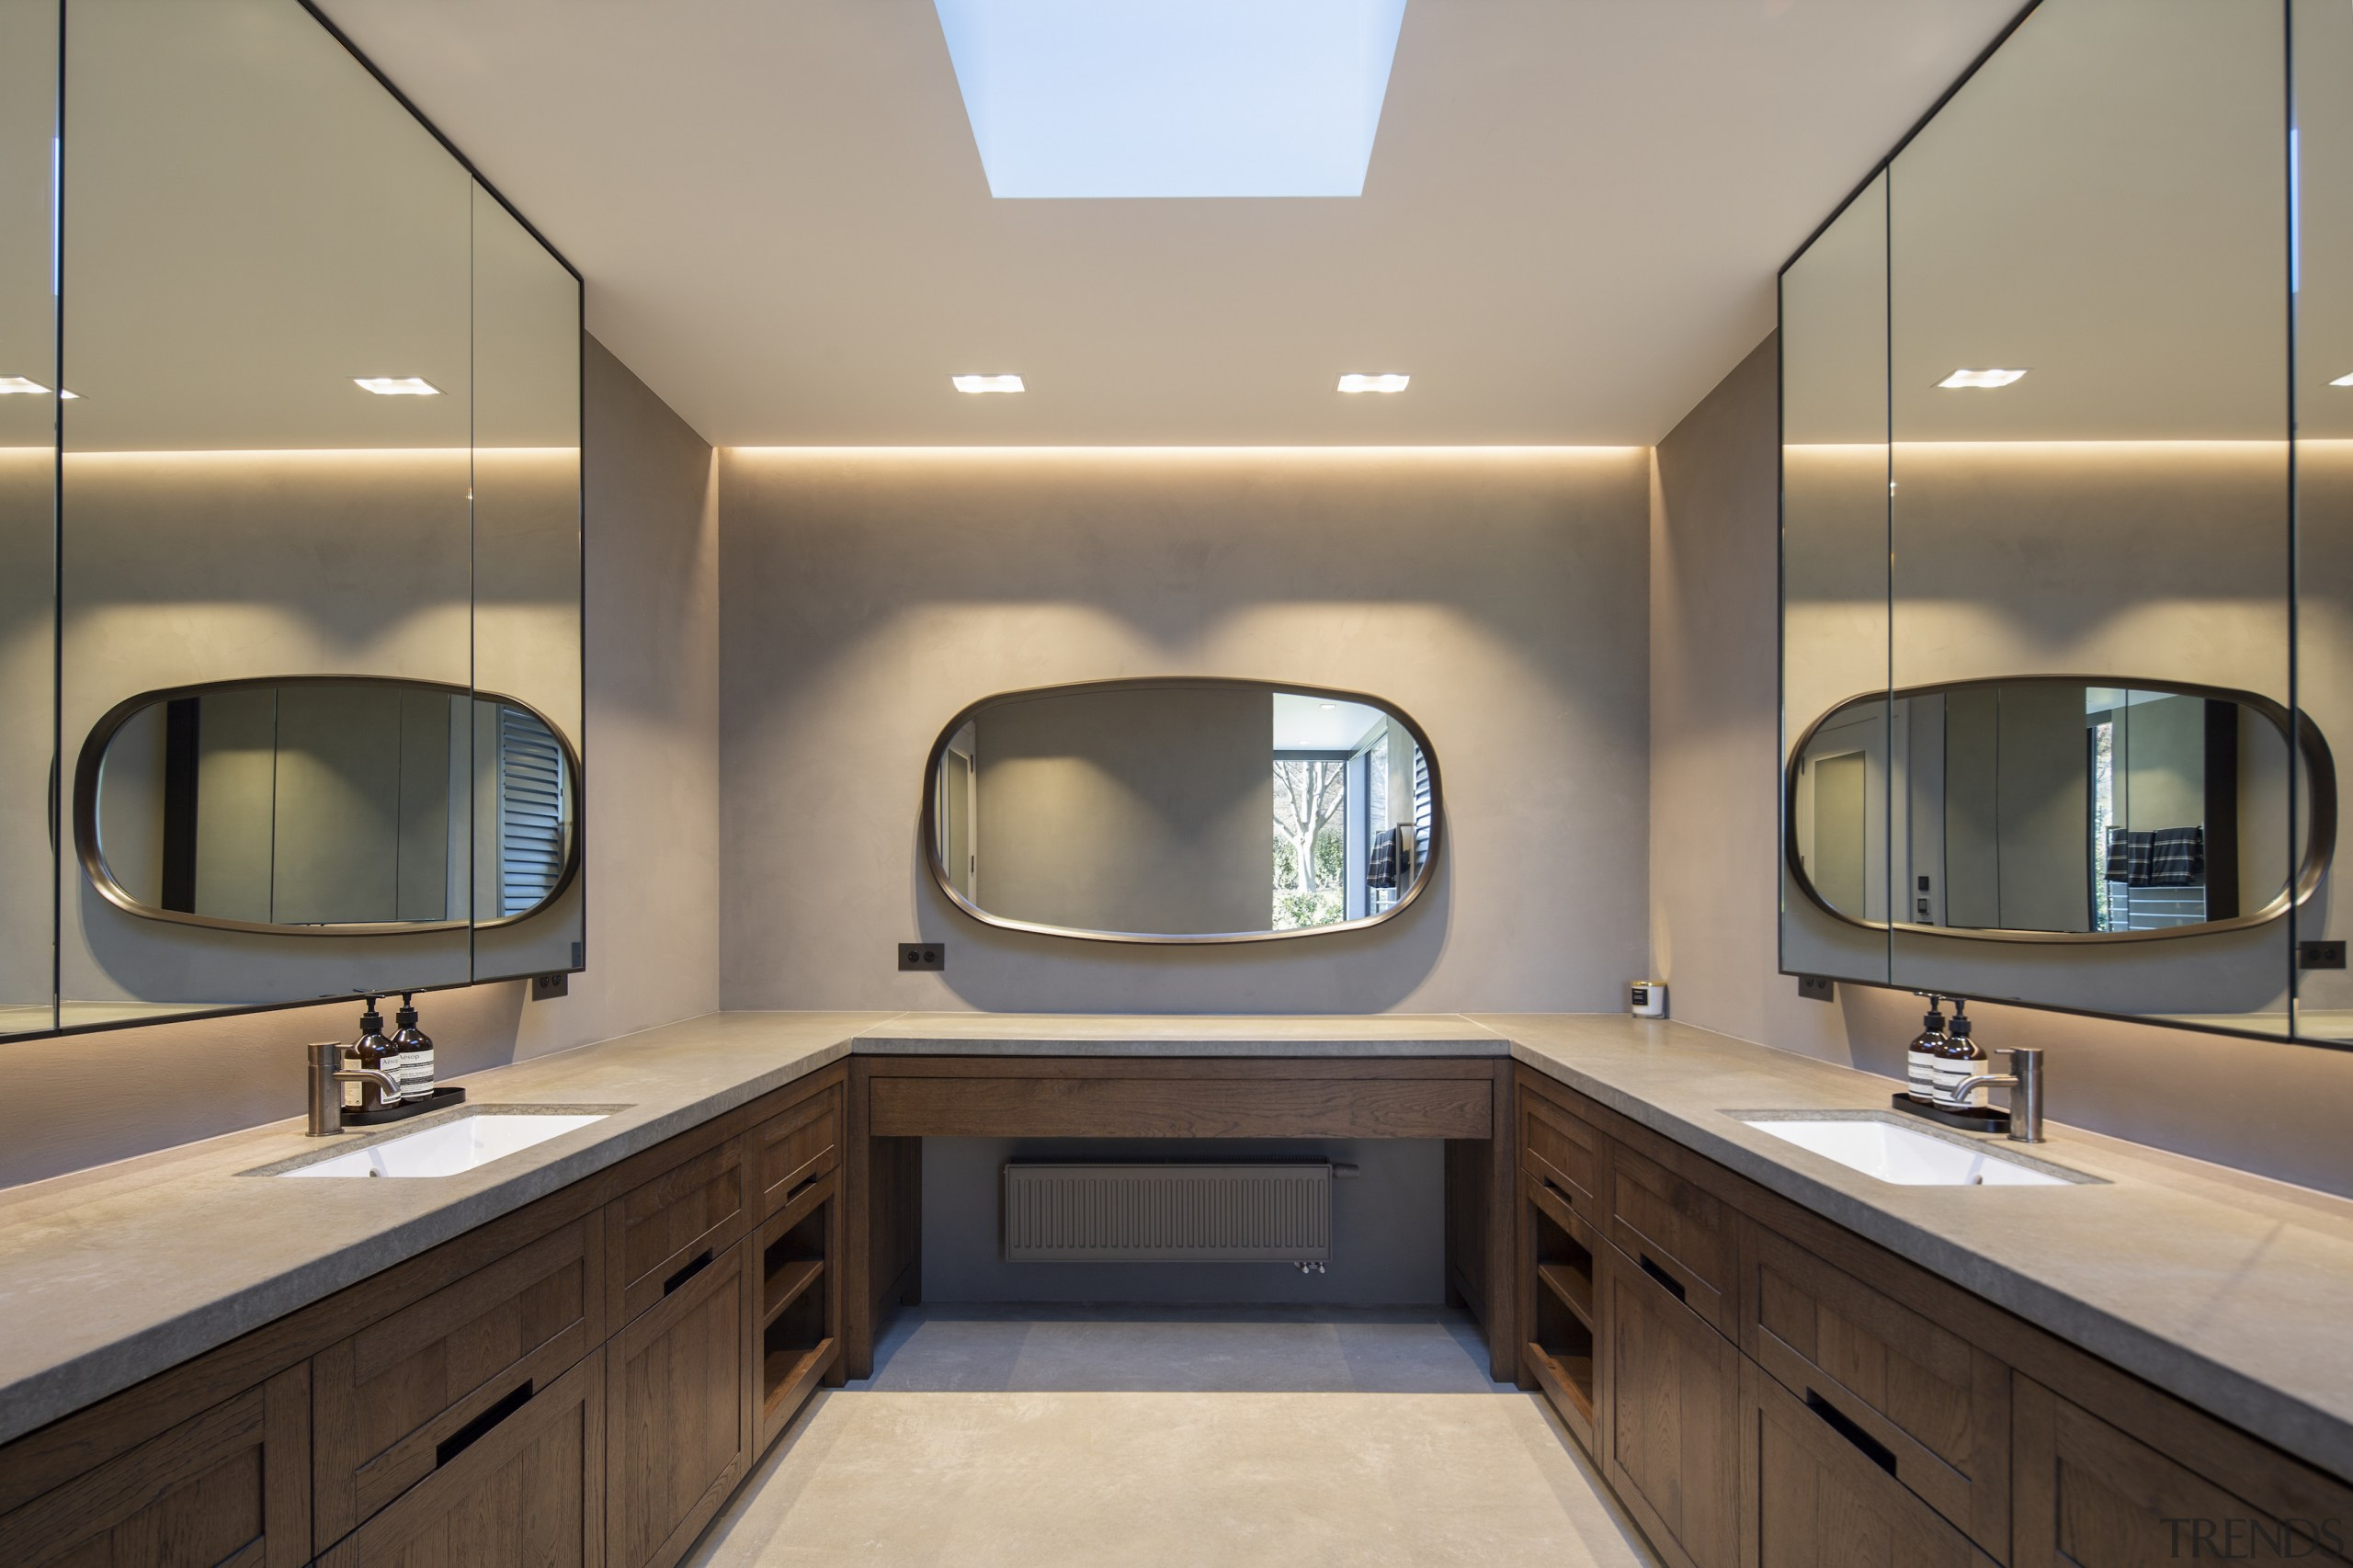 Recessed lighting and a skylight mean every area